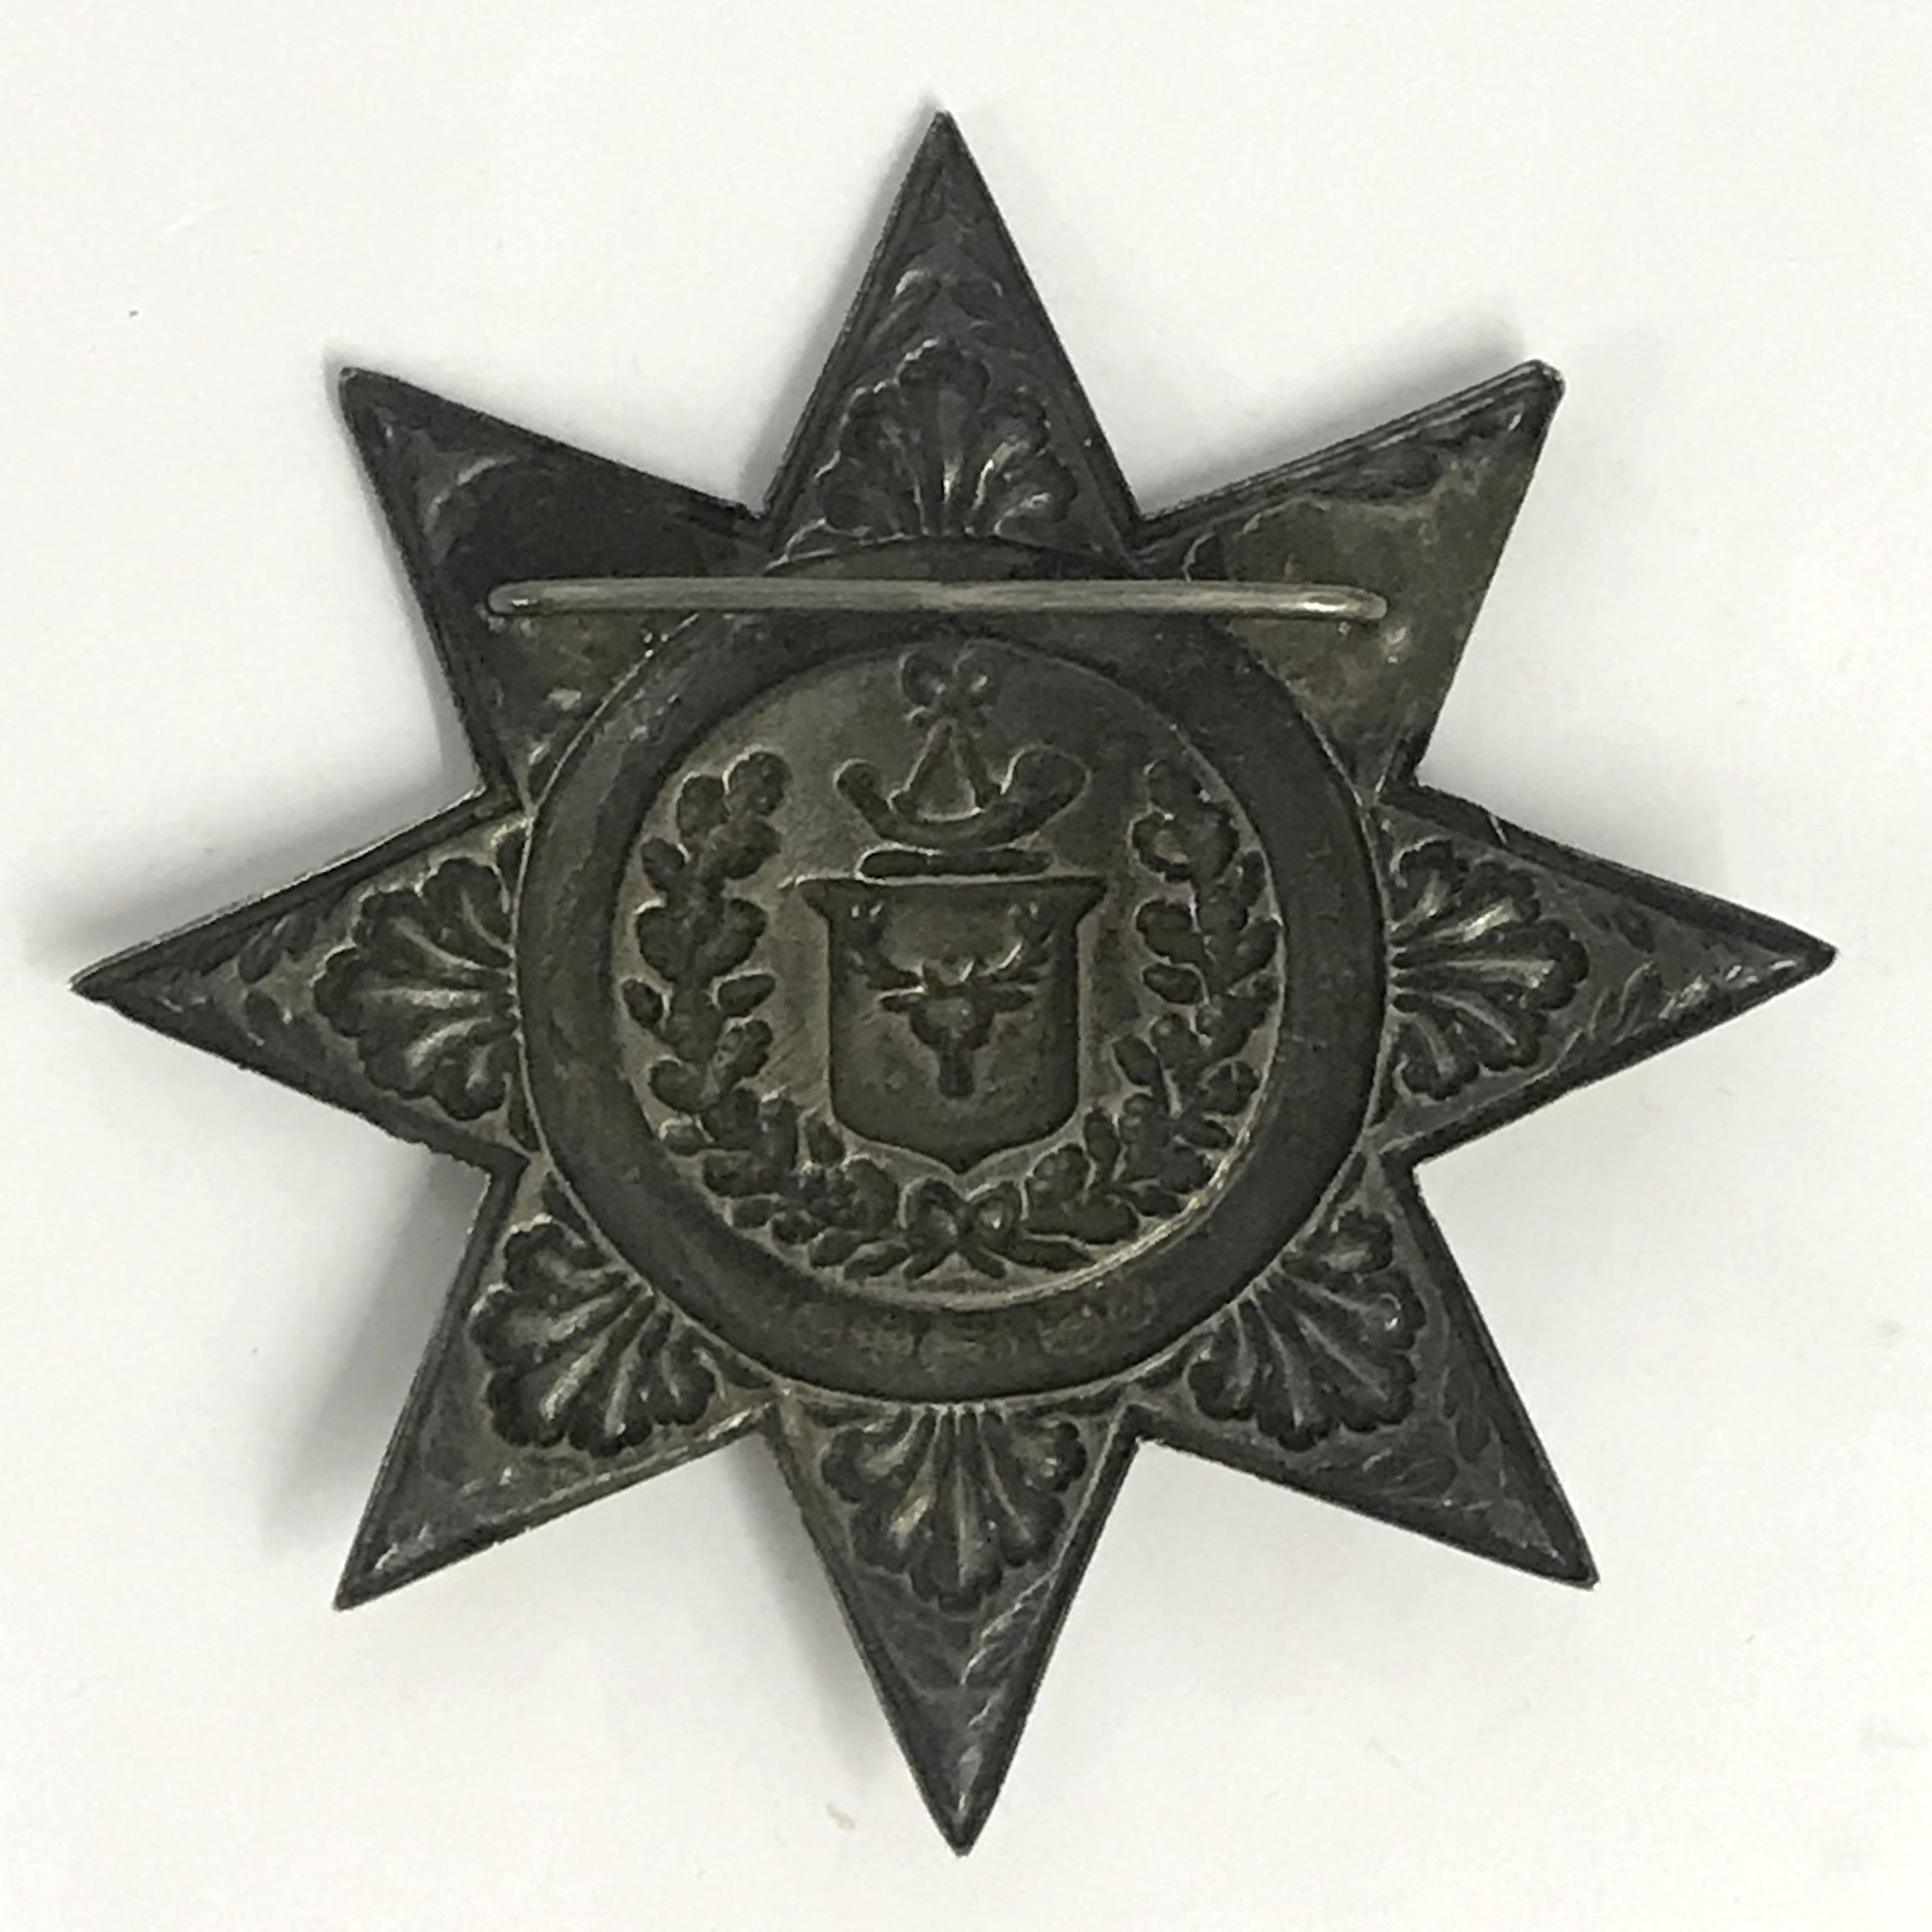 Lot 30 - Antique Ancient Order Of Foresters Large Hallmarked Silver Star Jewel Badge & Medal